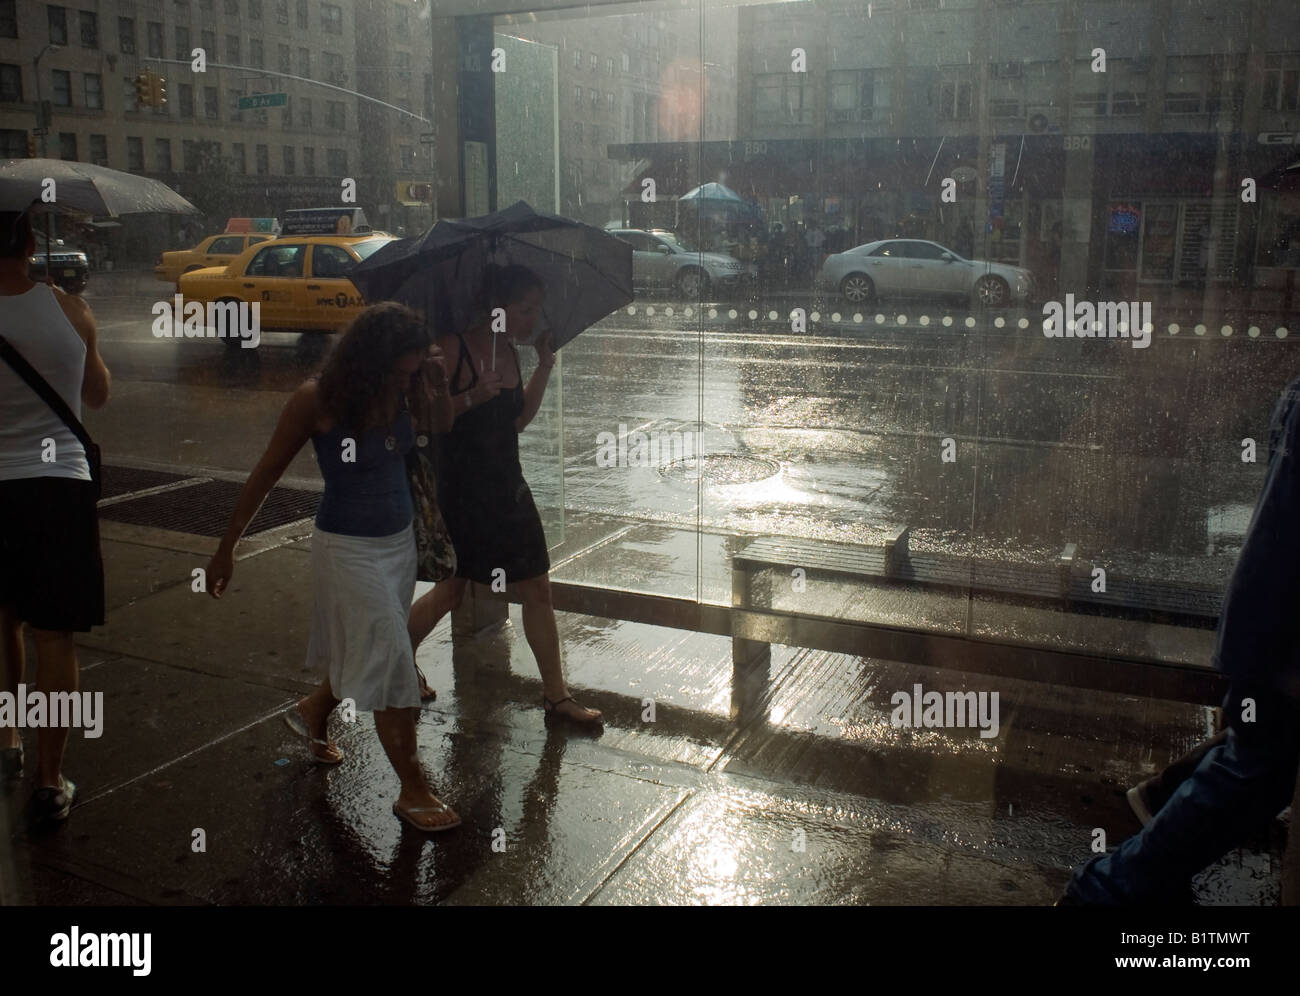 Pedestrians in the New York neighborhood of Chelsea endure a drenching rainstorm - Stock Image